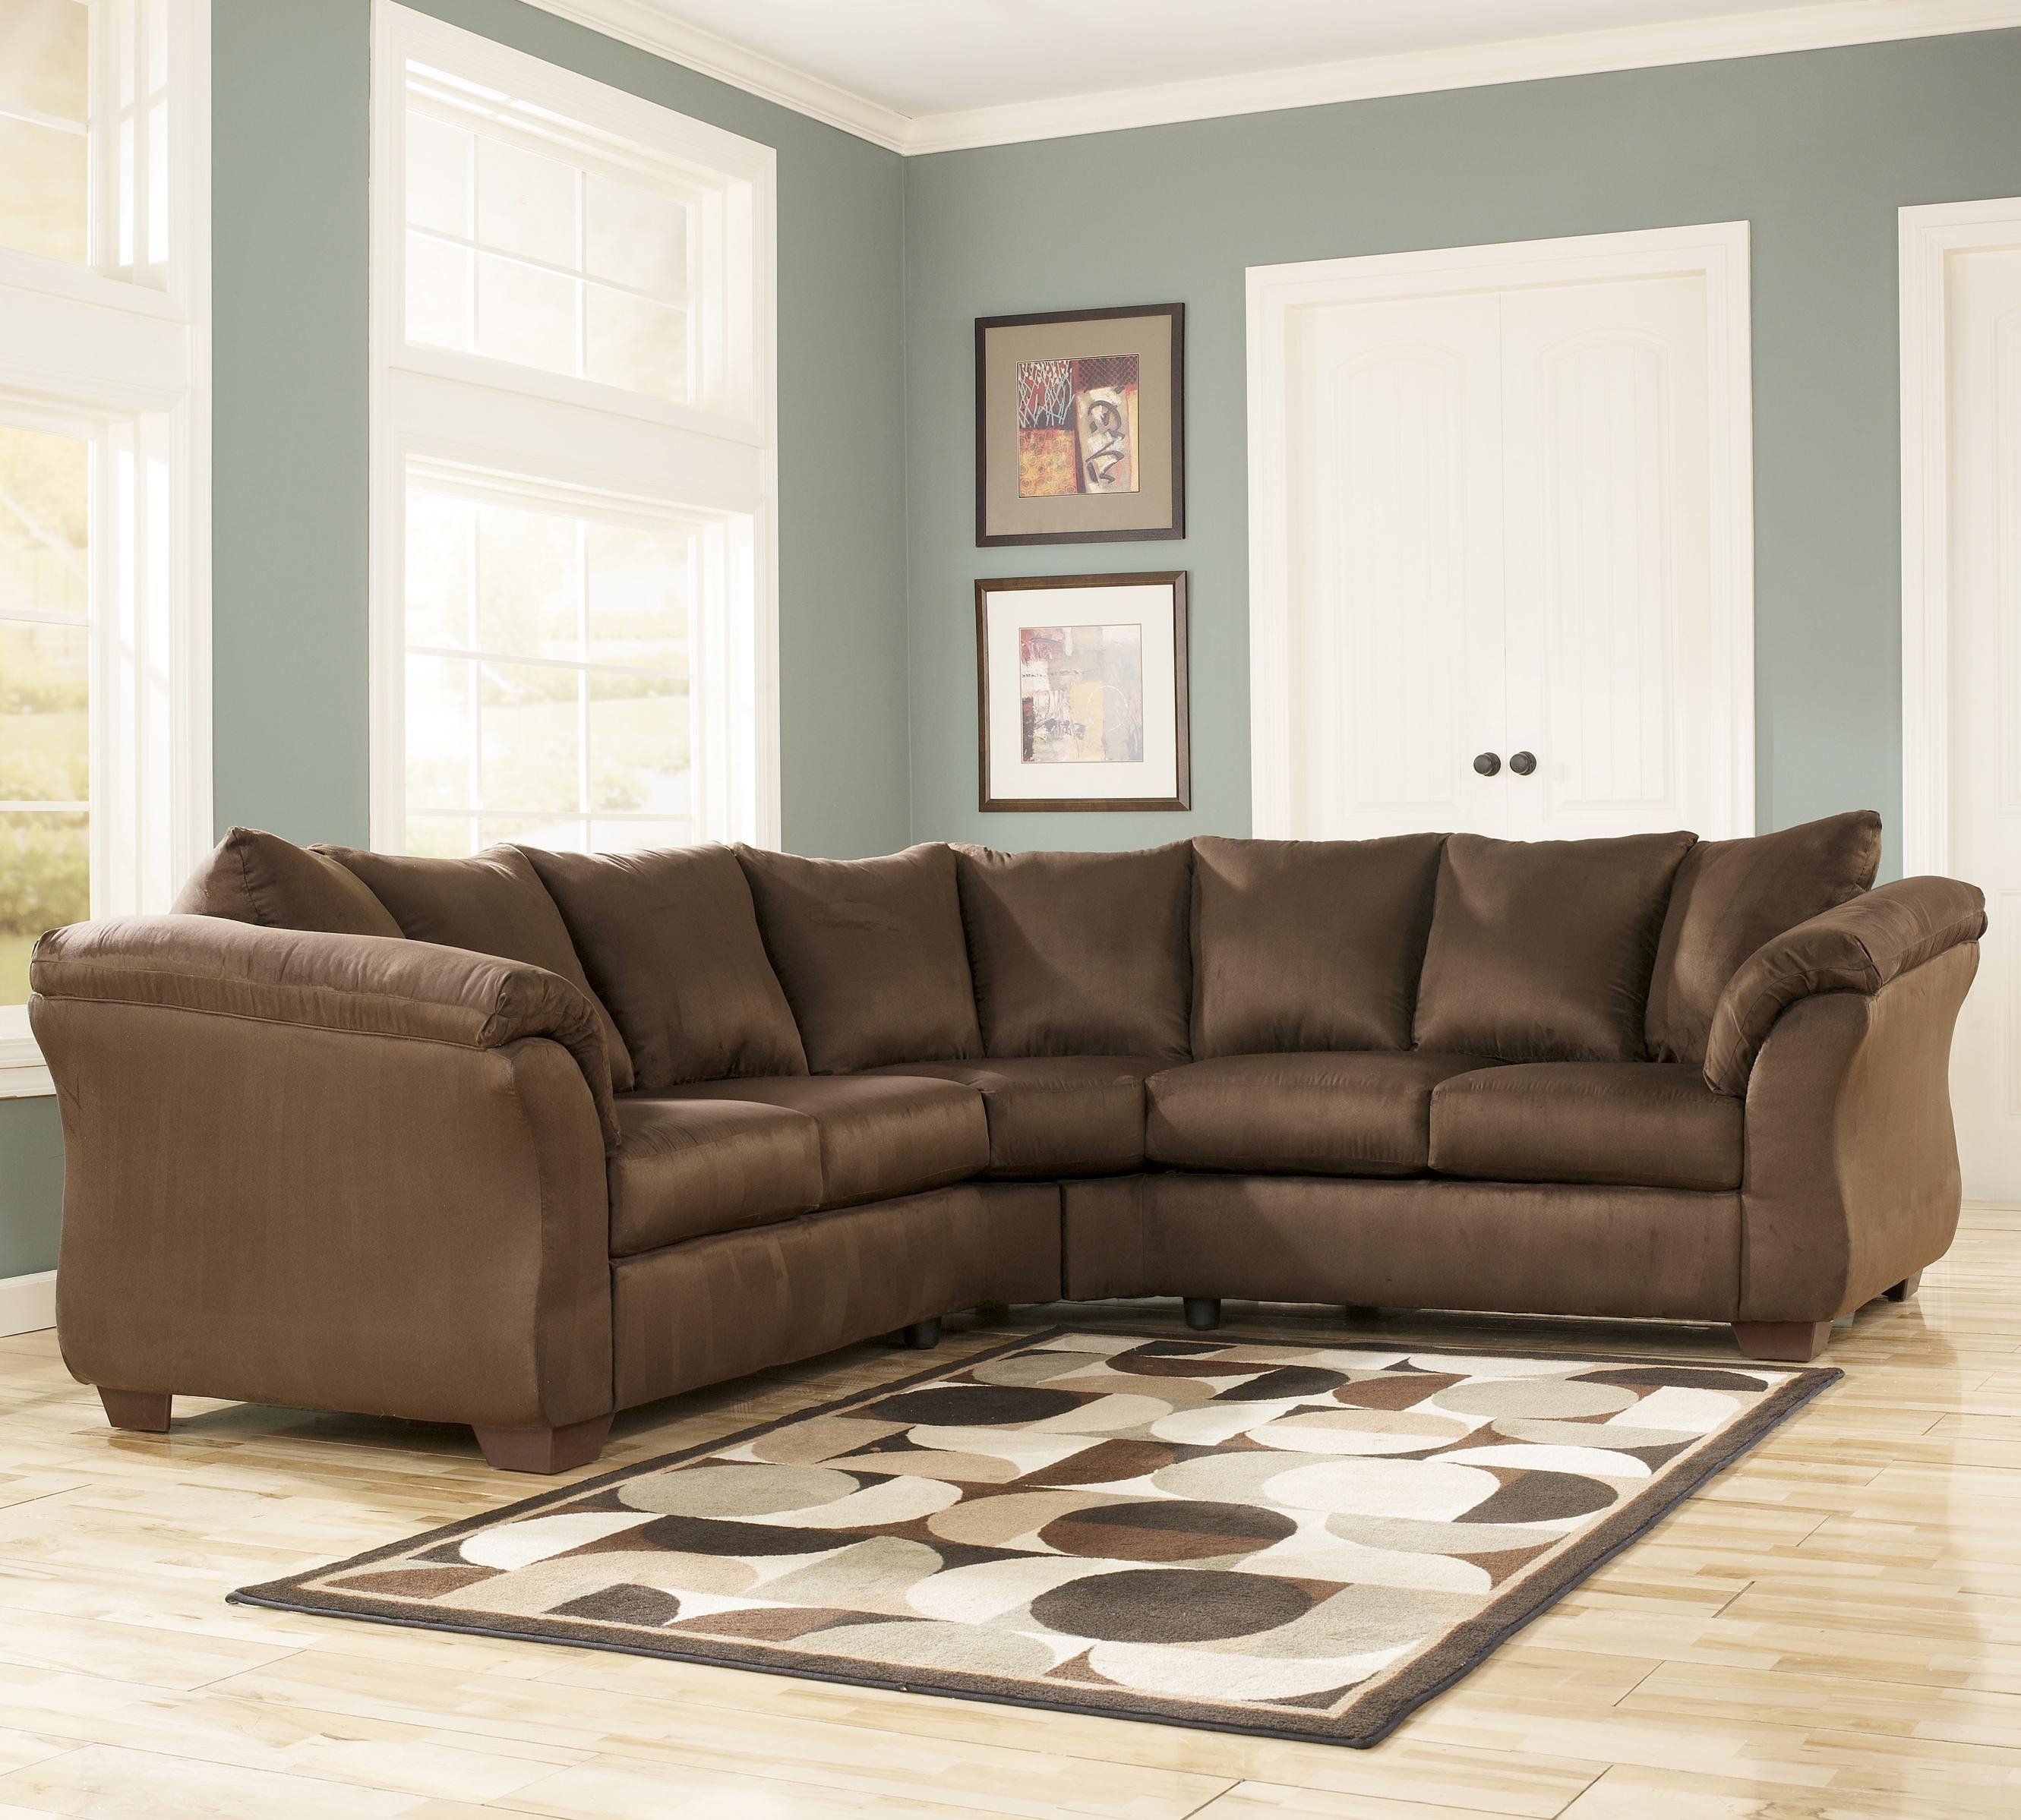 Furniture : Leather Couch Ashley Furniture Inspirational Beautiful Inside Sectional Sofas At Ashley (View 10 of 10)